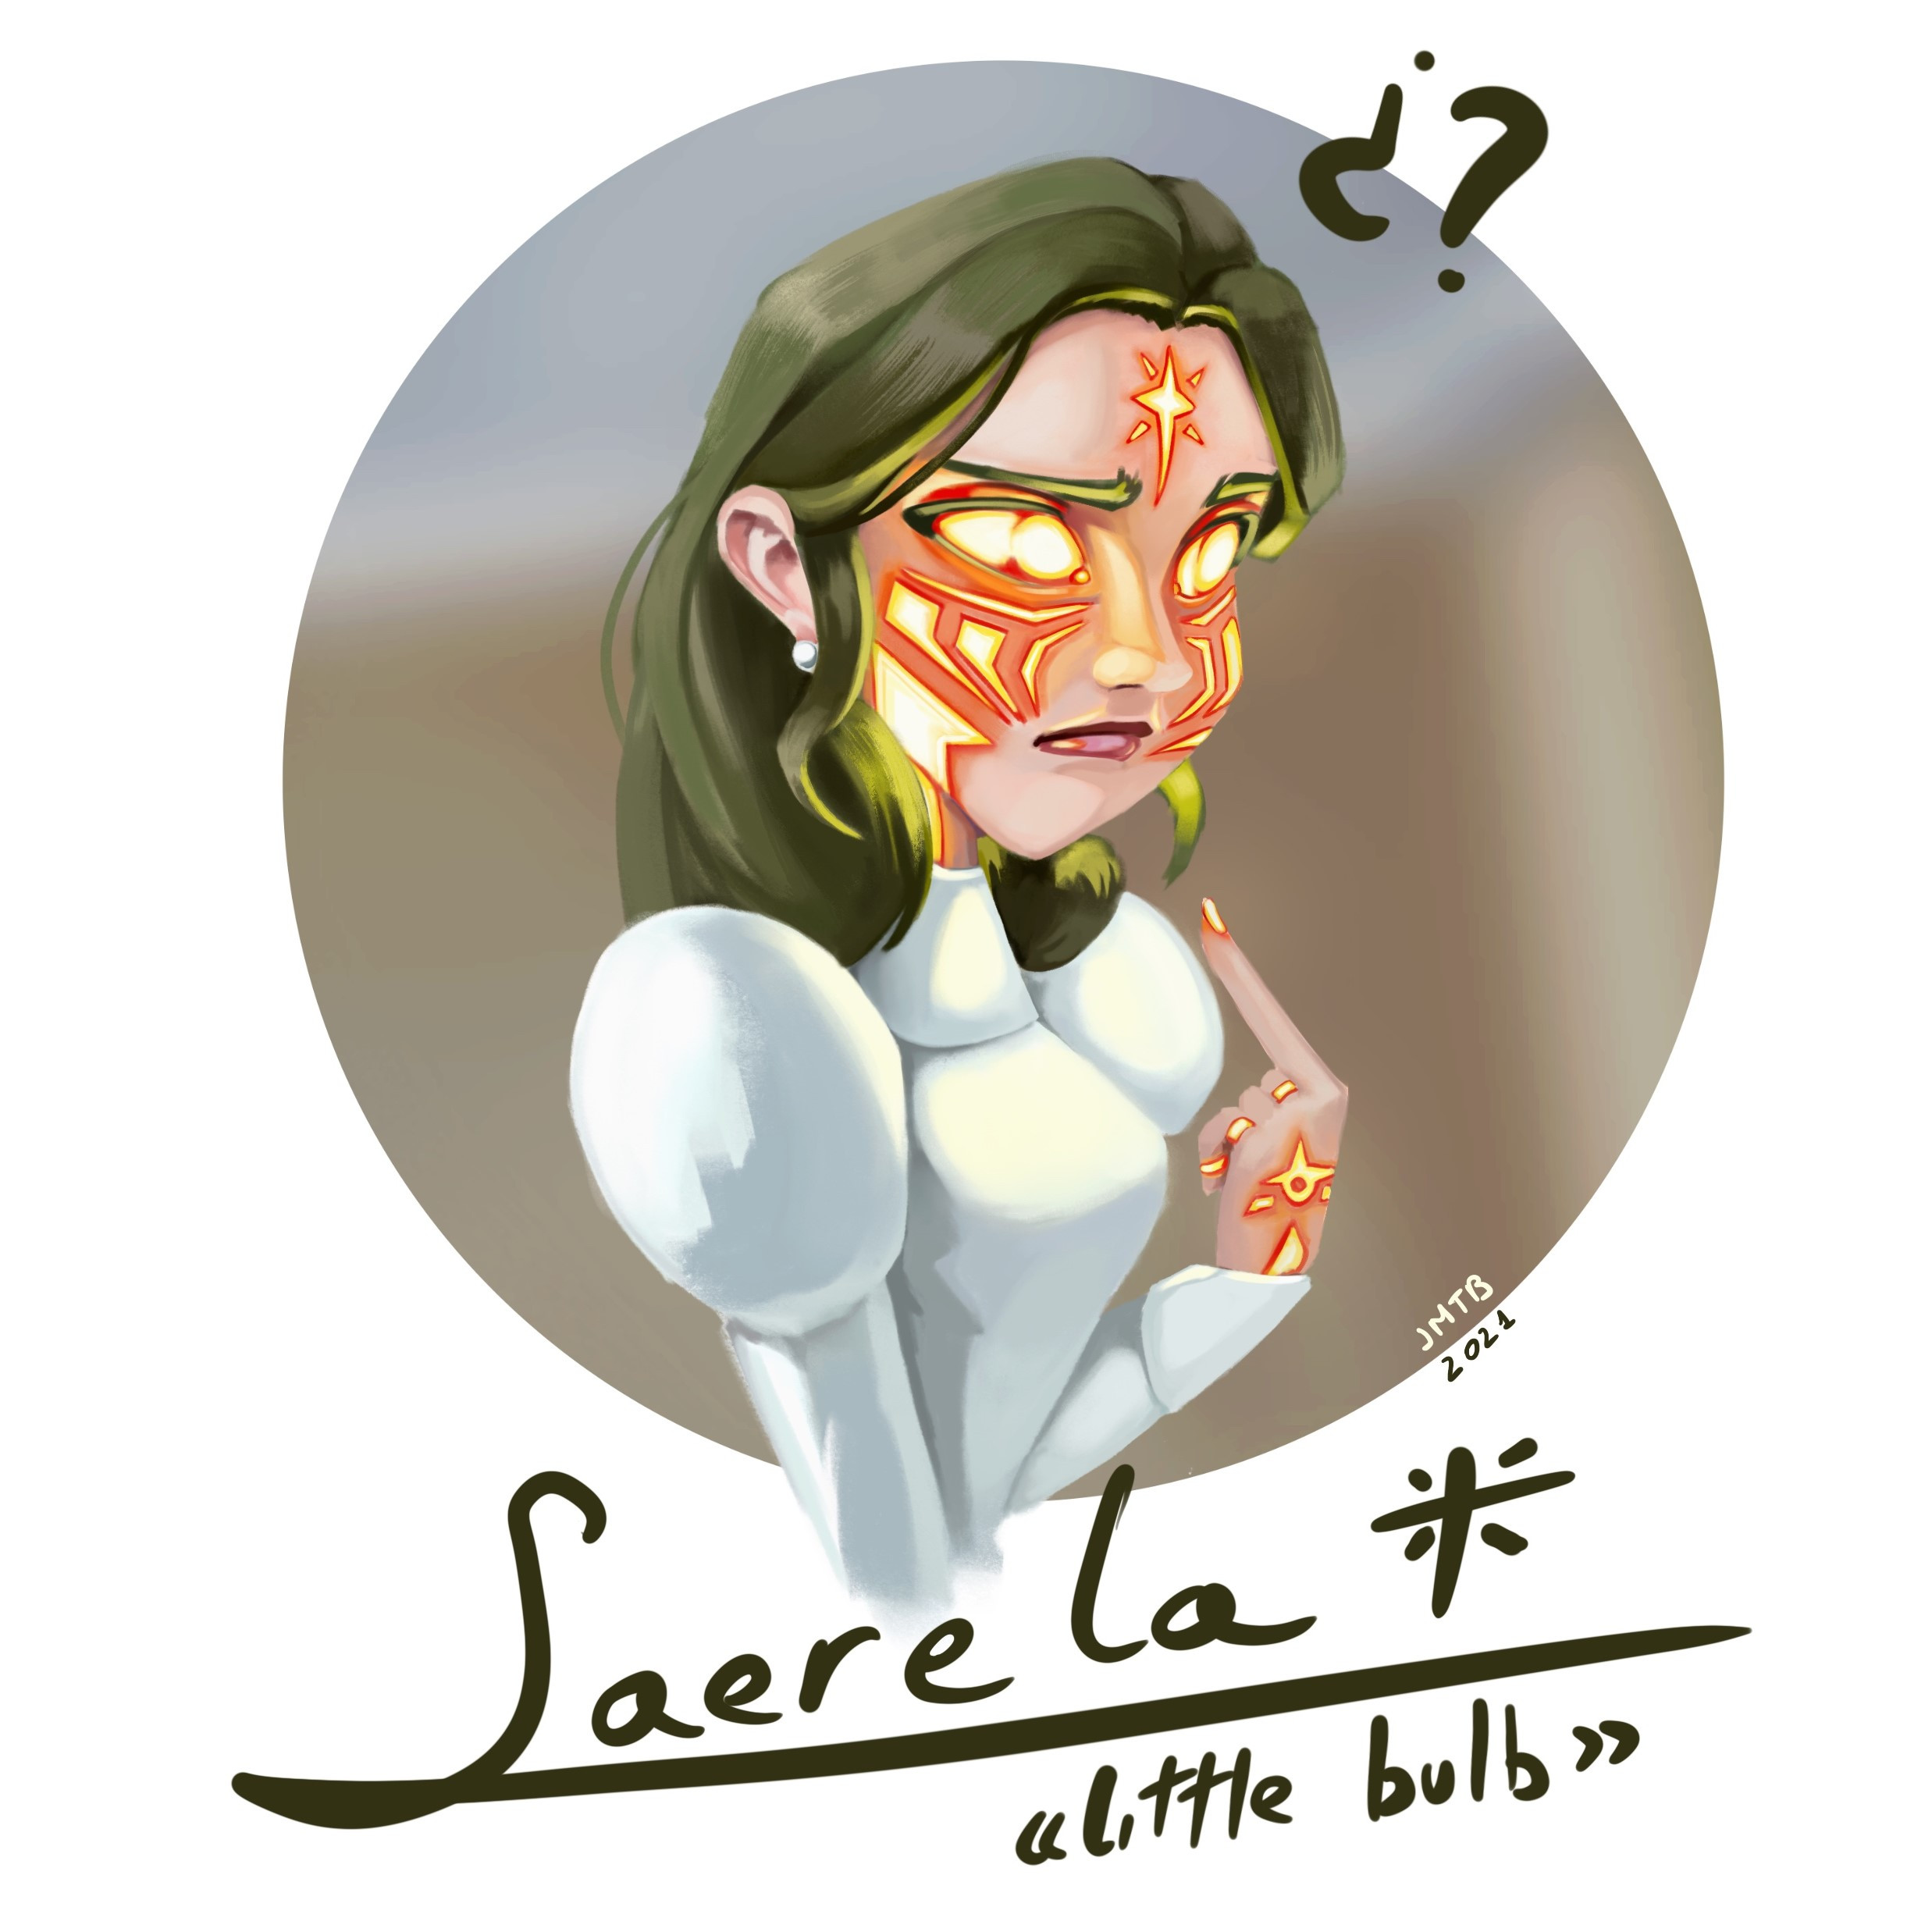 Cute Laerela Saen version